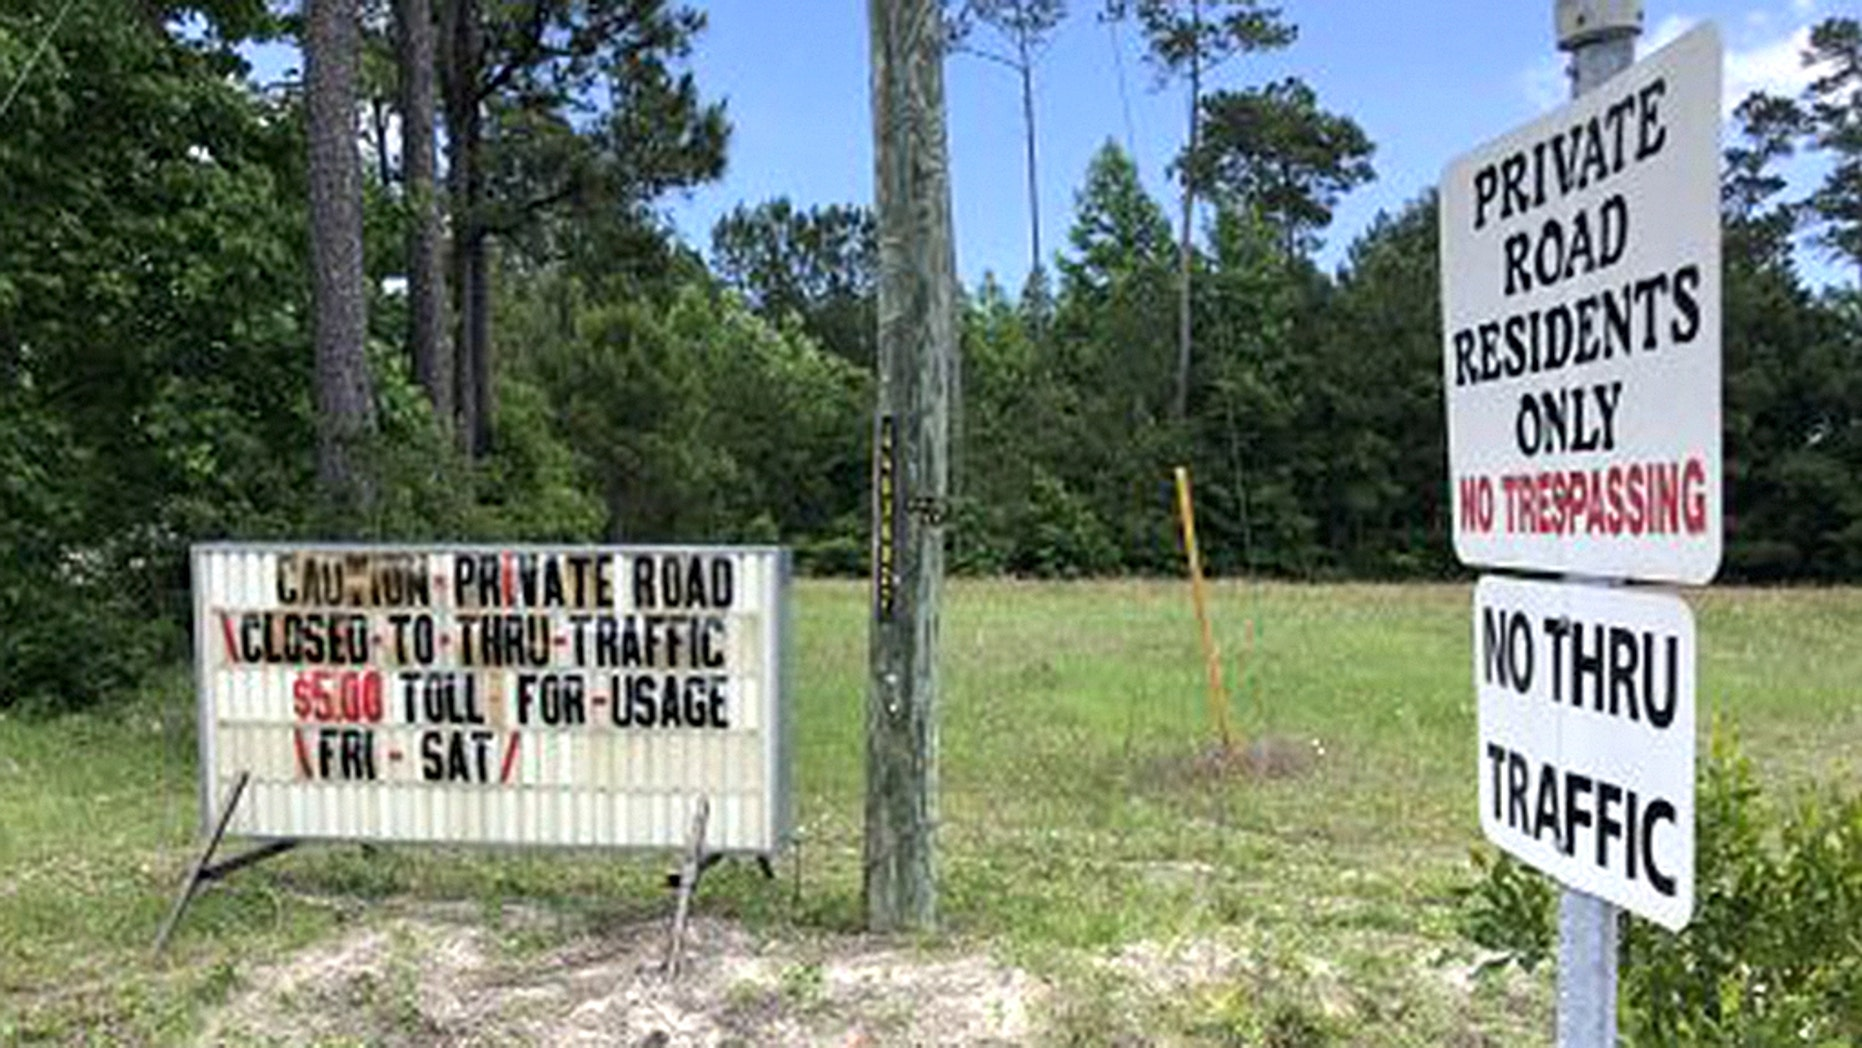 Residents of a North Carolina neighborhood have decided to impose a toll on a private street to deter traffic during the busy summer months.